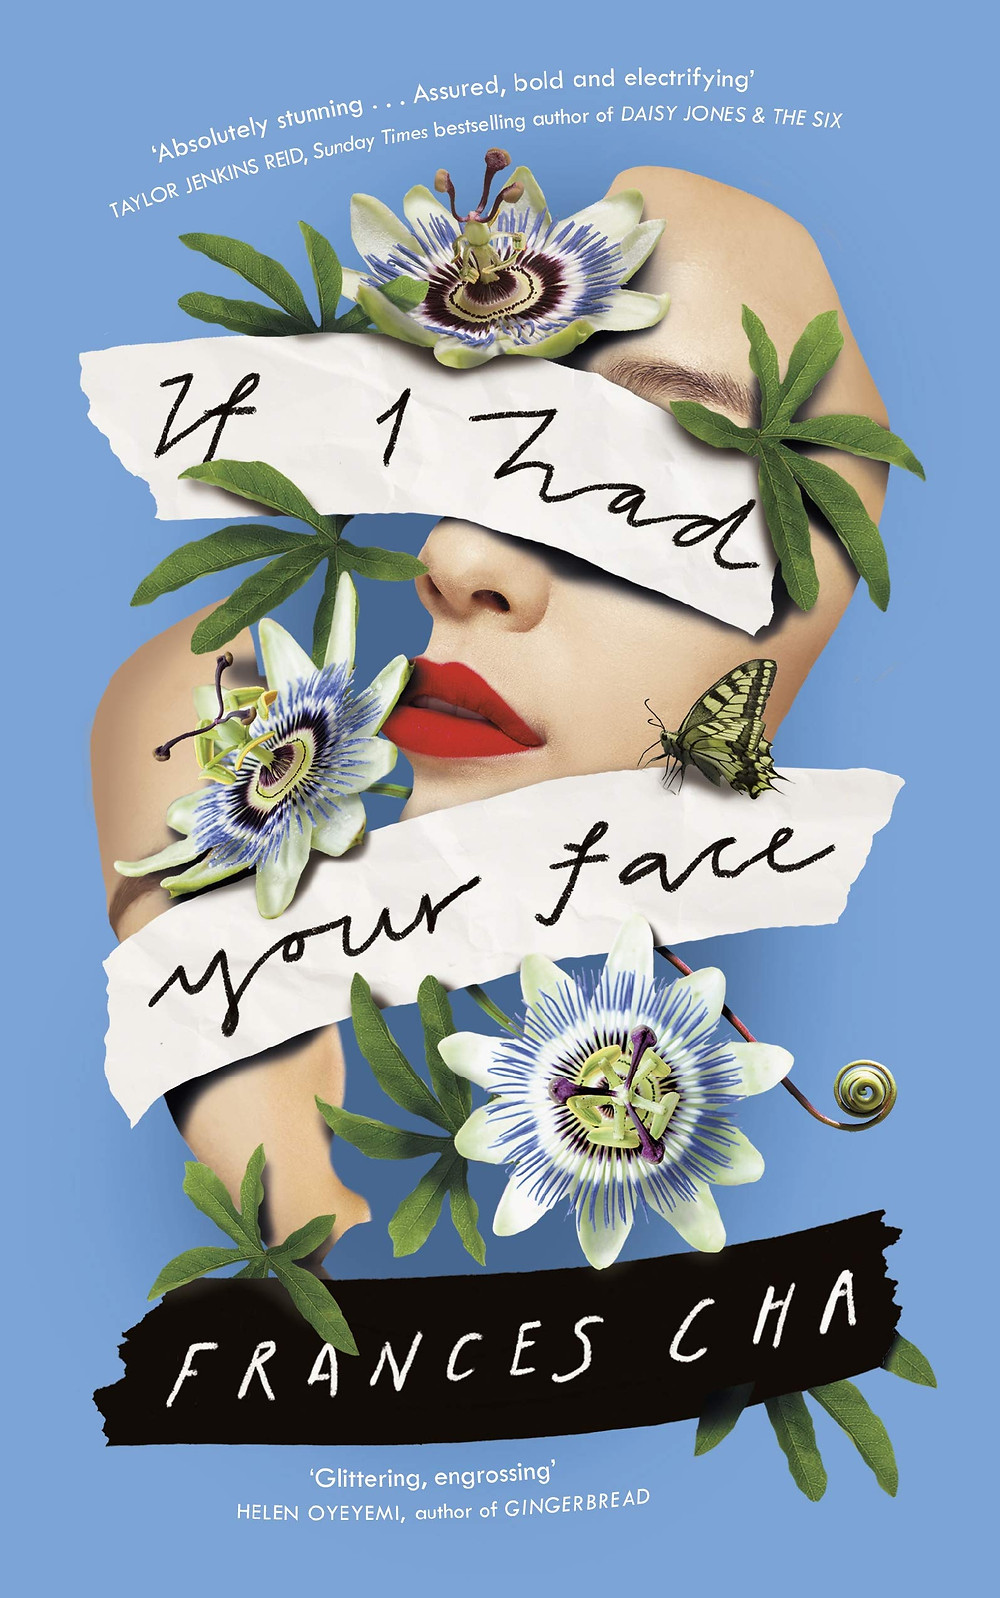 If I Had Your Face By Frances Cha best blue book covers collage portrait passionfruit flower viking books thebookslut book reviews the book slut